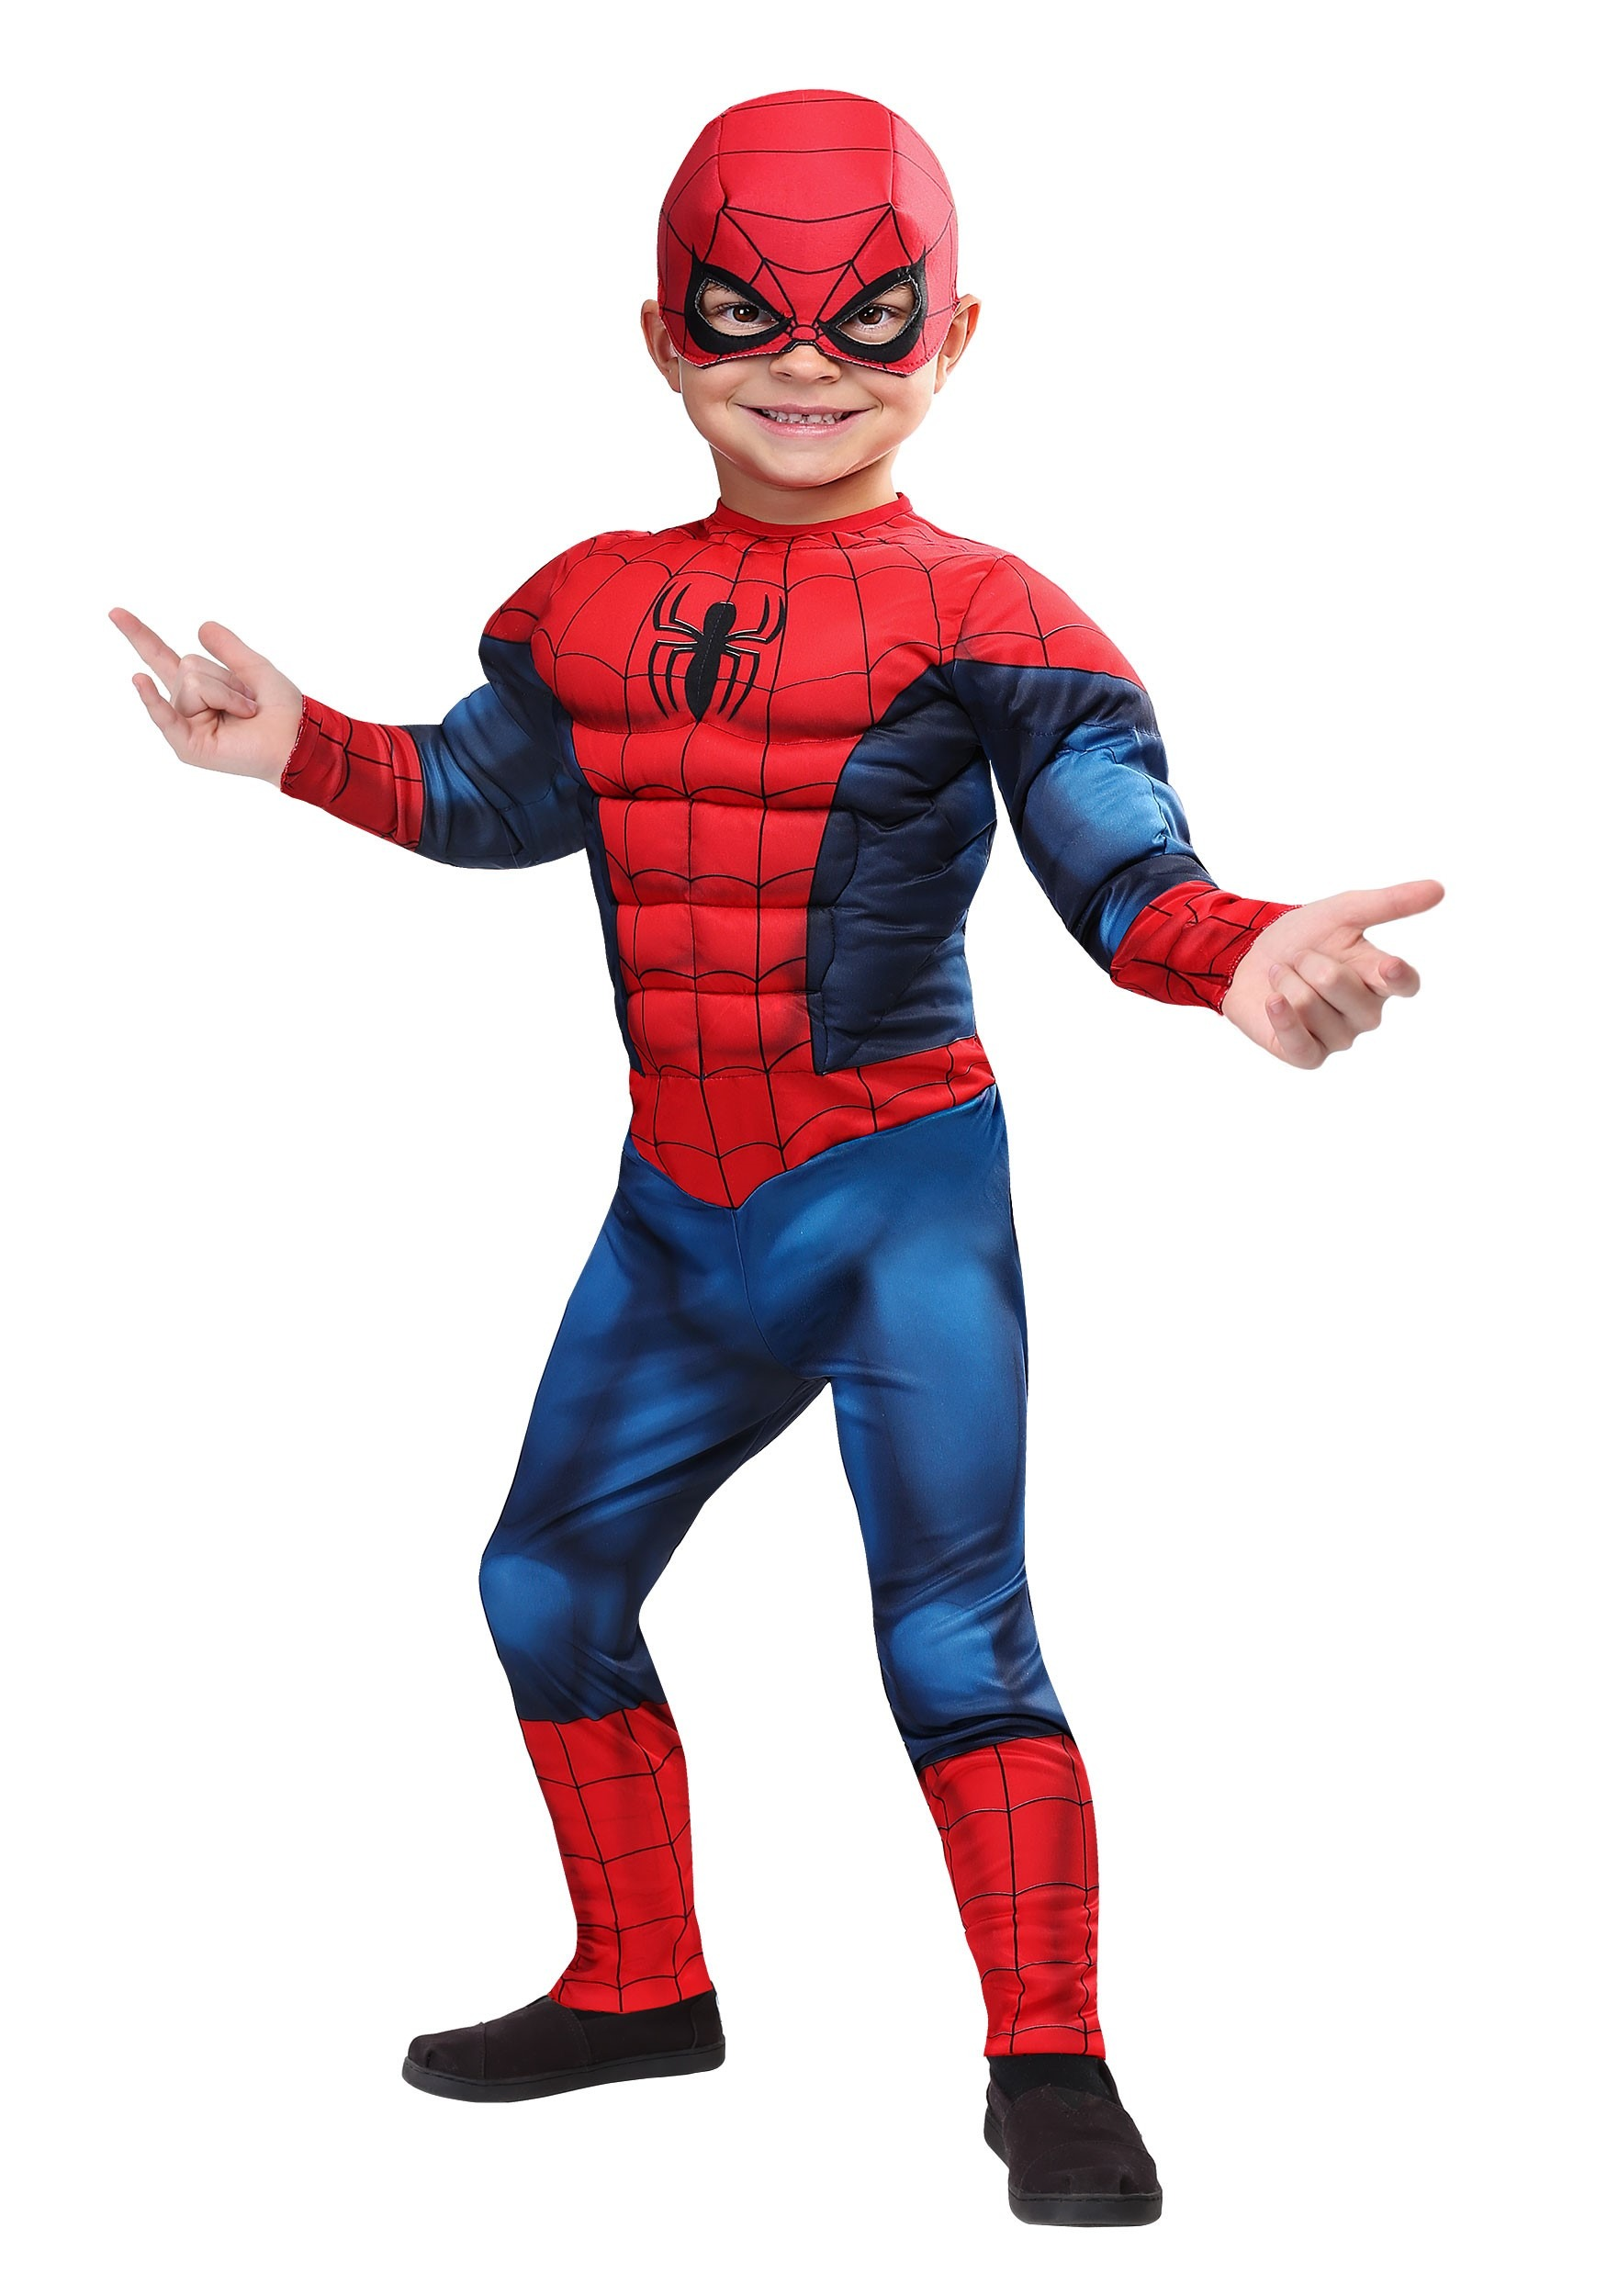 Marvel Spider-Man Toddler Boys Costume RU640696